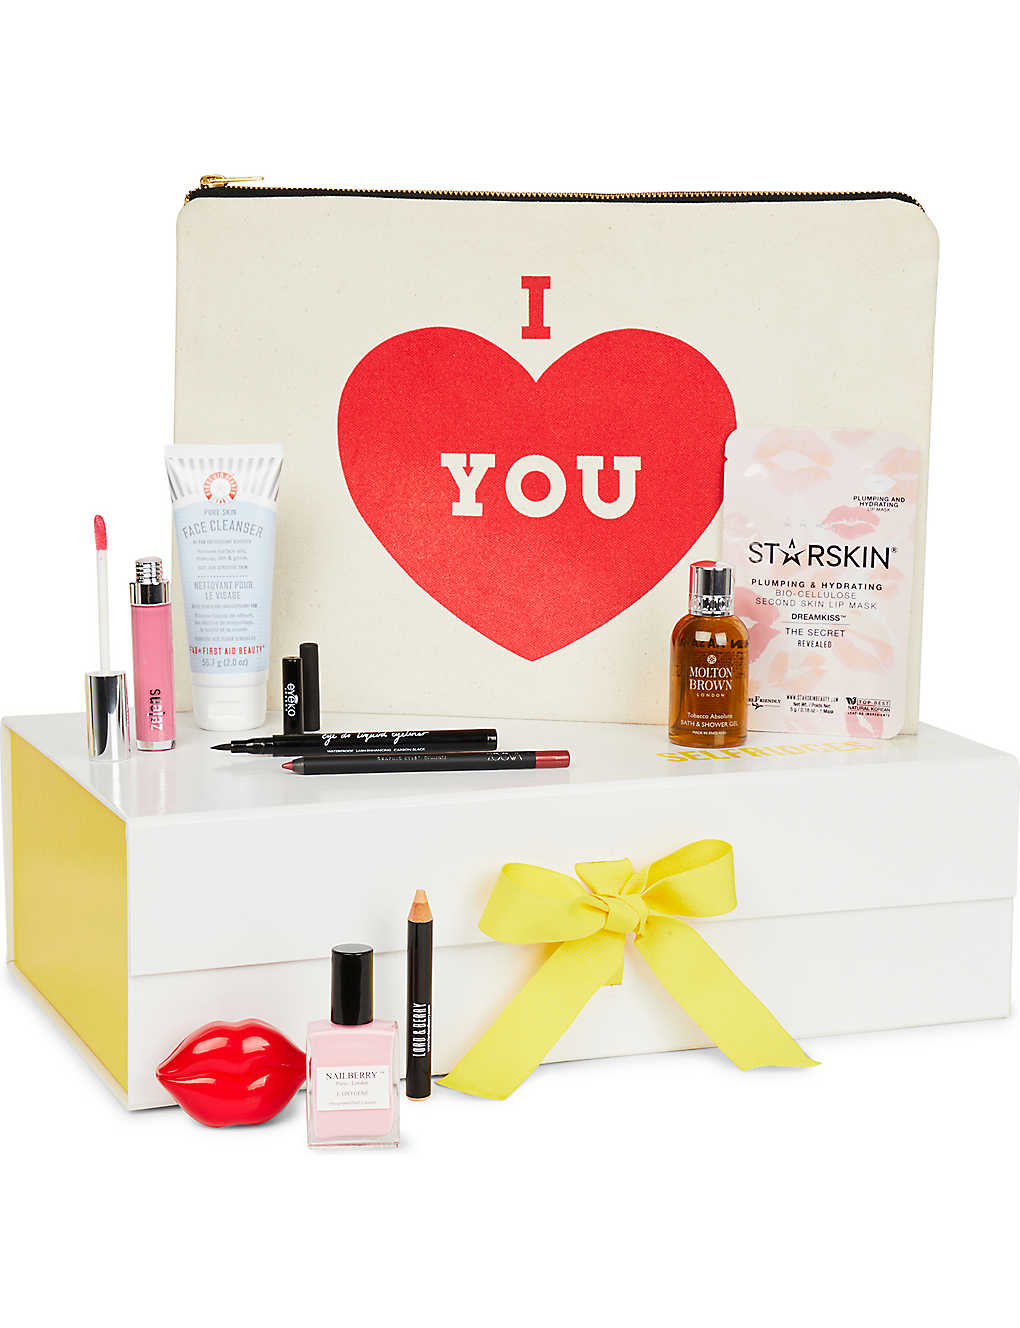 SELFRIDGES: I Heart You Valentine's Day Beauty Box